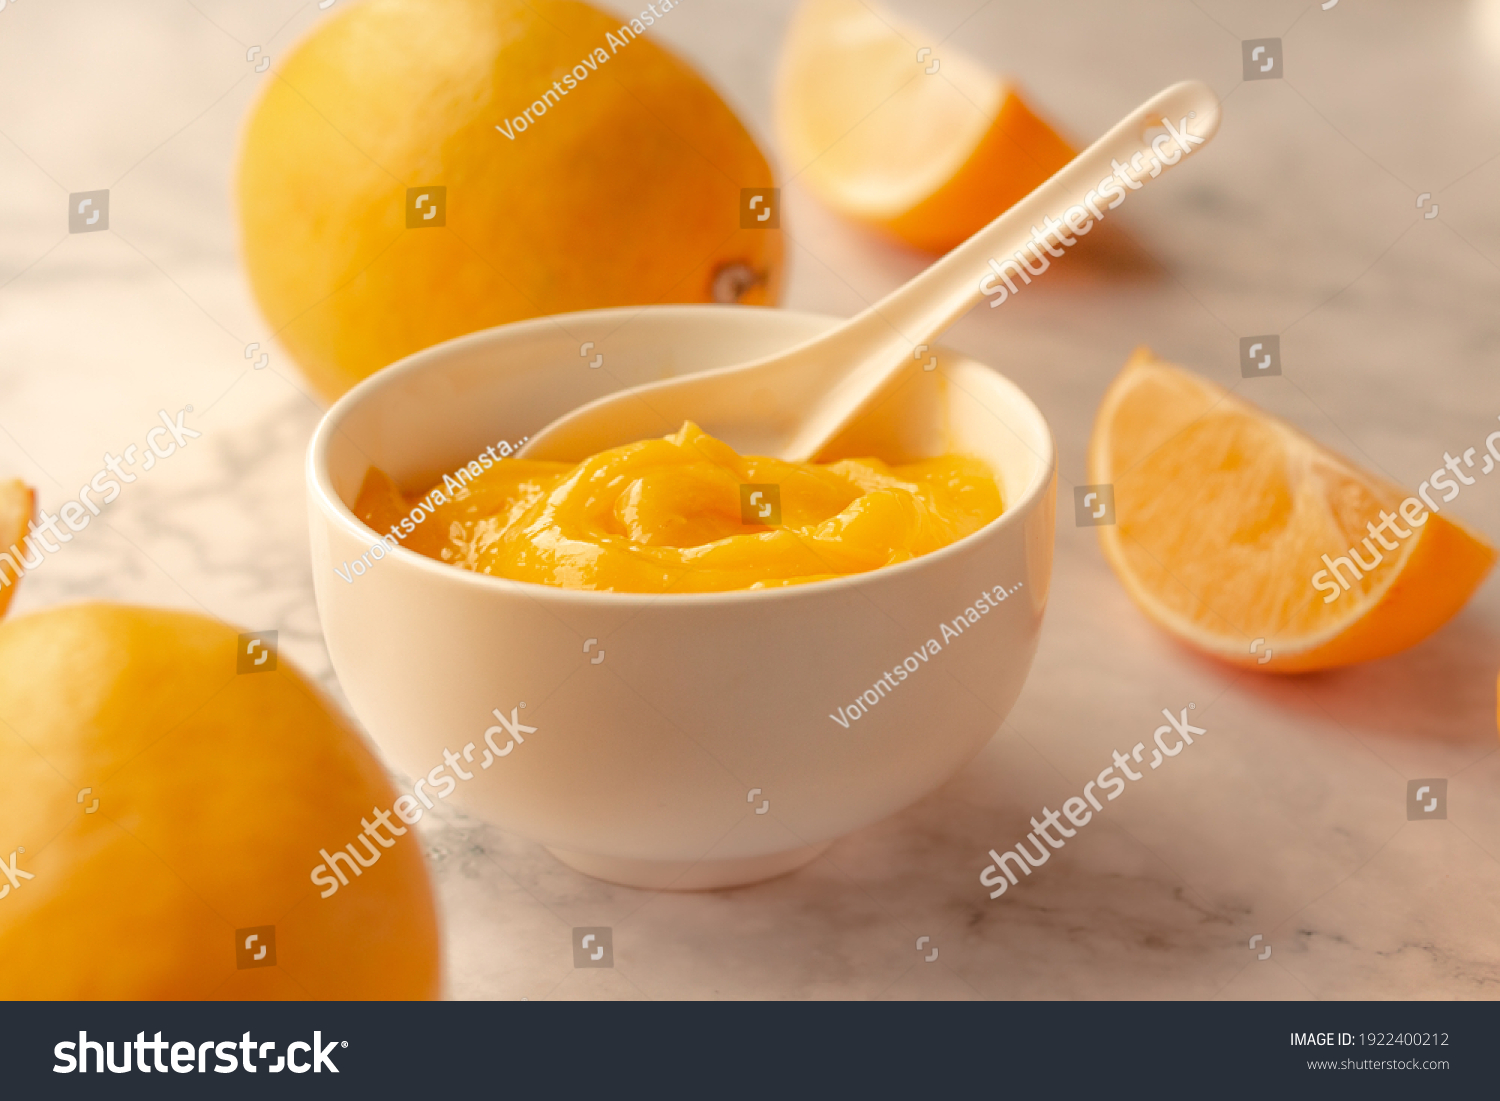 Homemade fresh pudding or tangy lemon curd in a white bowl.Selective focus. #1922400212